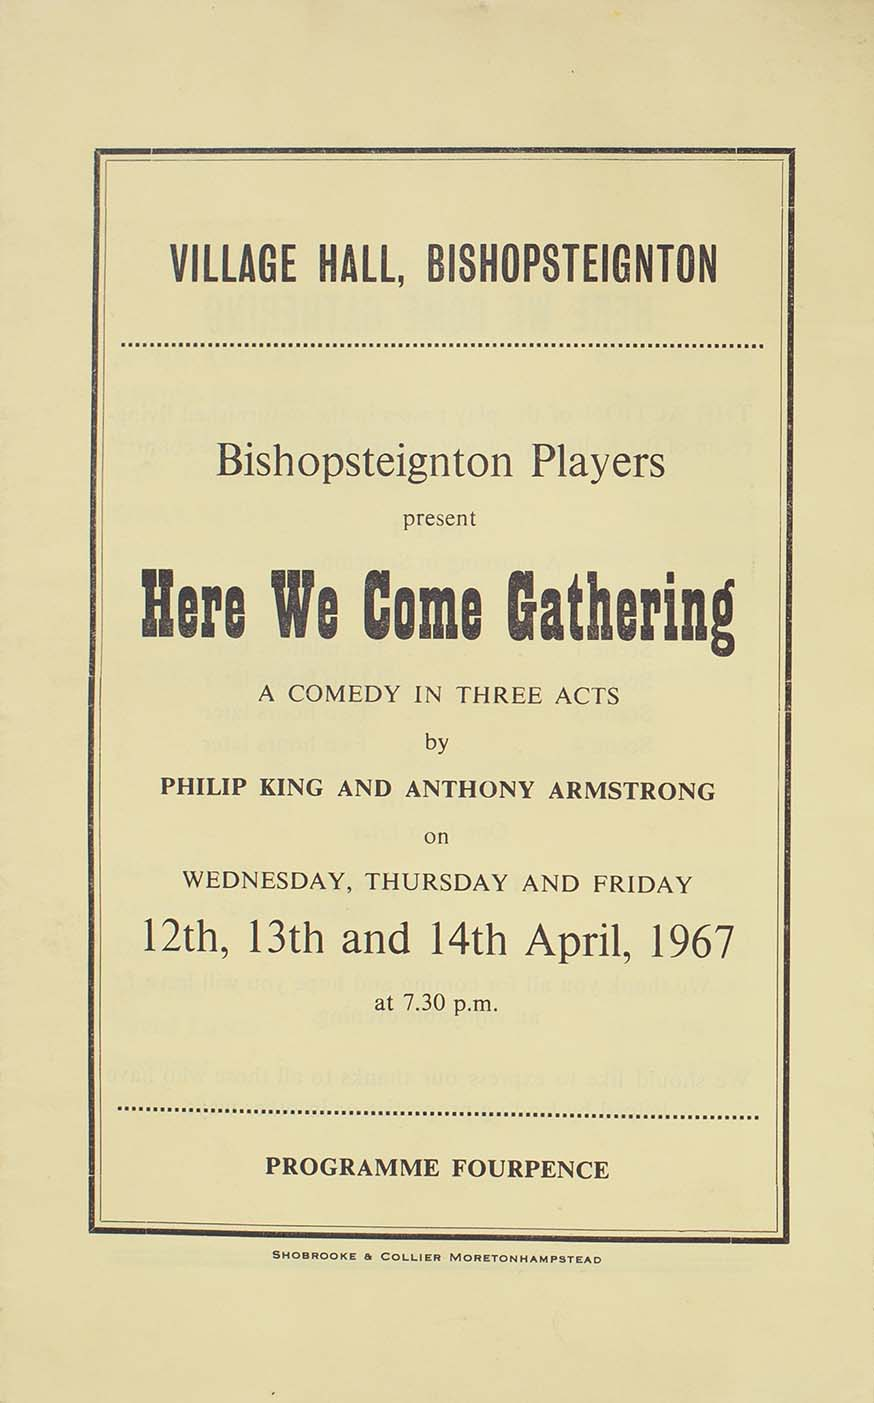 Leaflet to advertise the programme for the play 'Here We Come Gathering' presented by the Bishopsteignton Players front